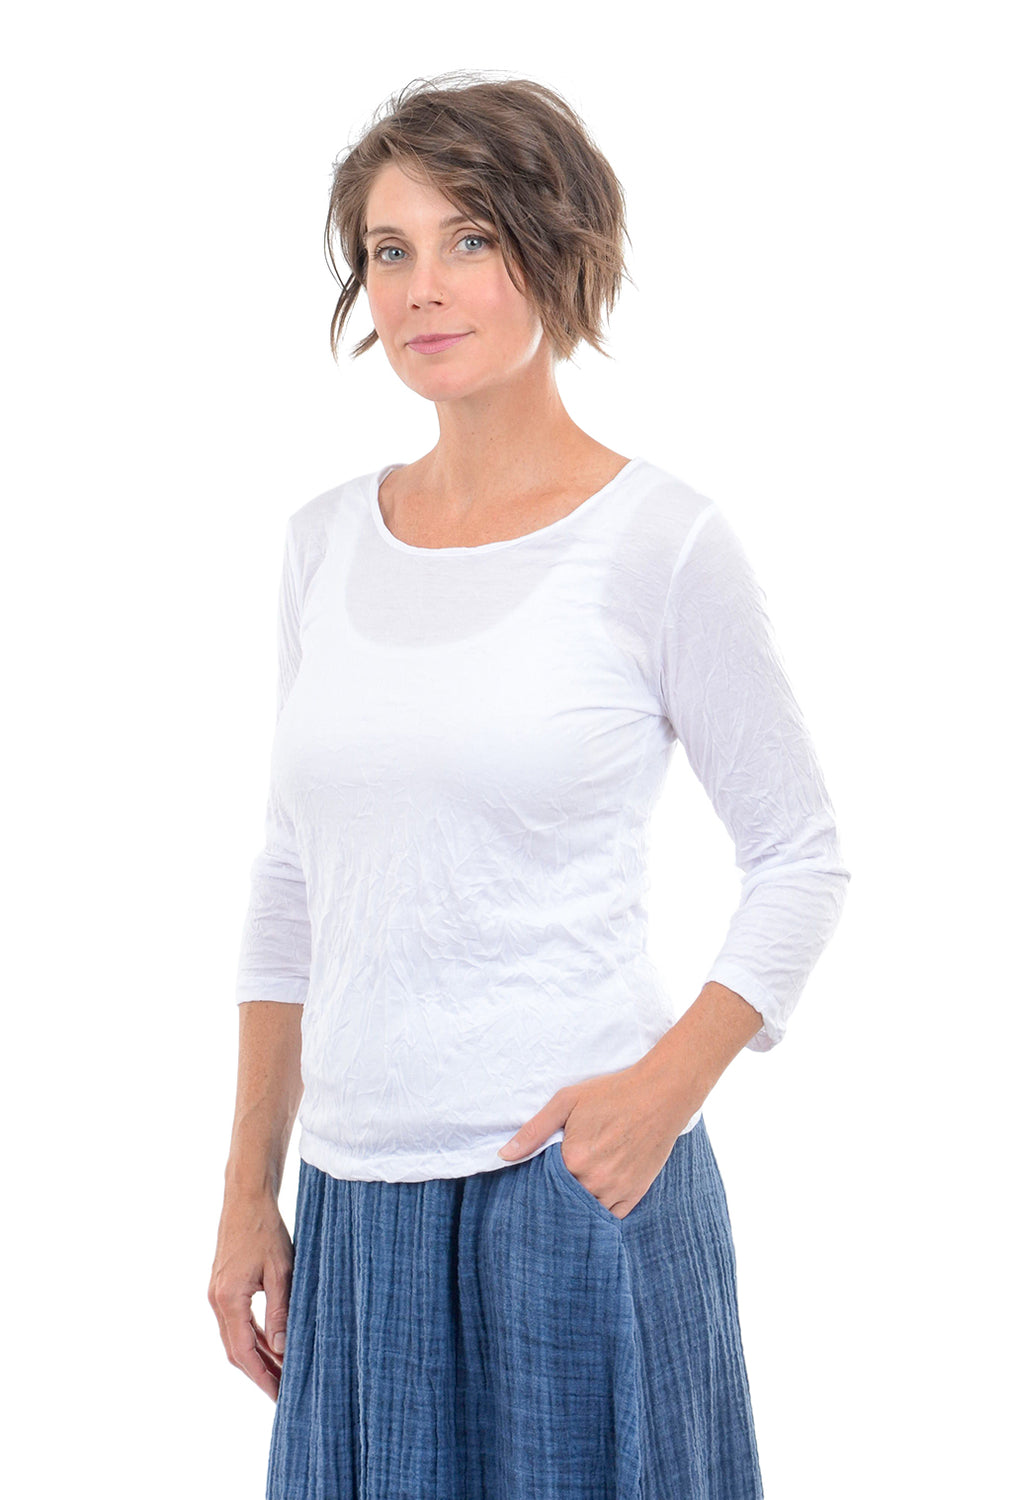 Comfy USA 3/4-Sleeve Crinkle Tee, White